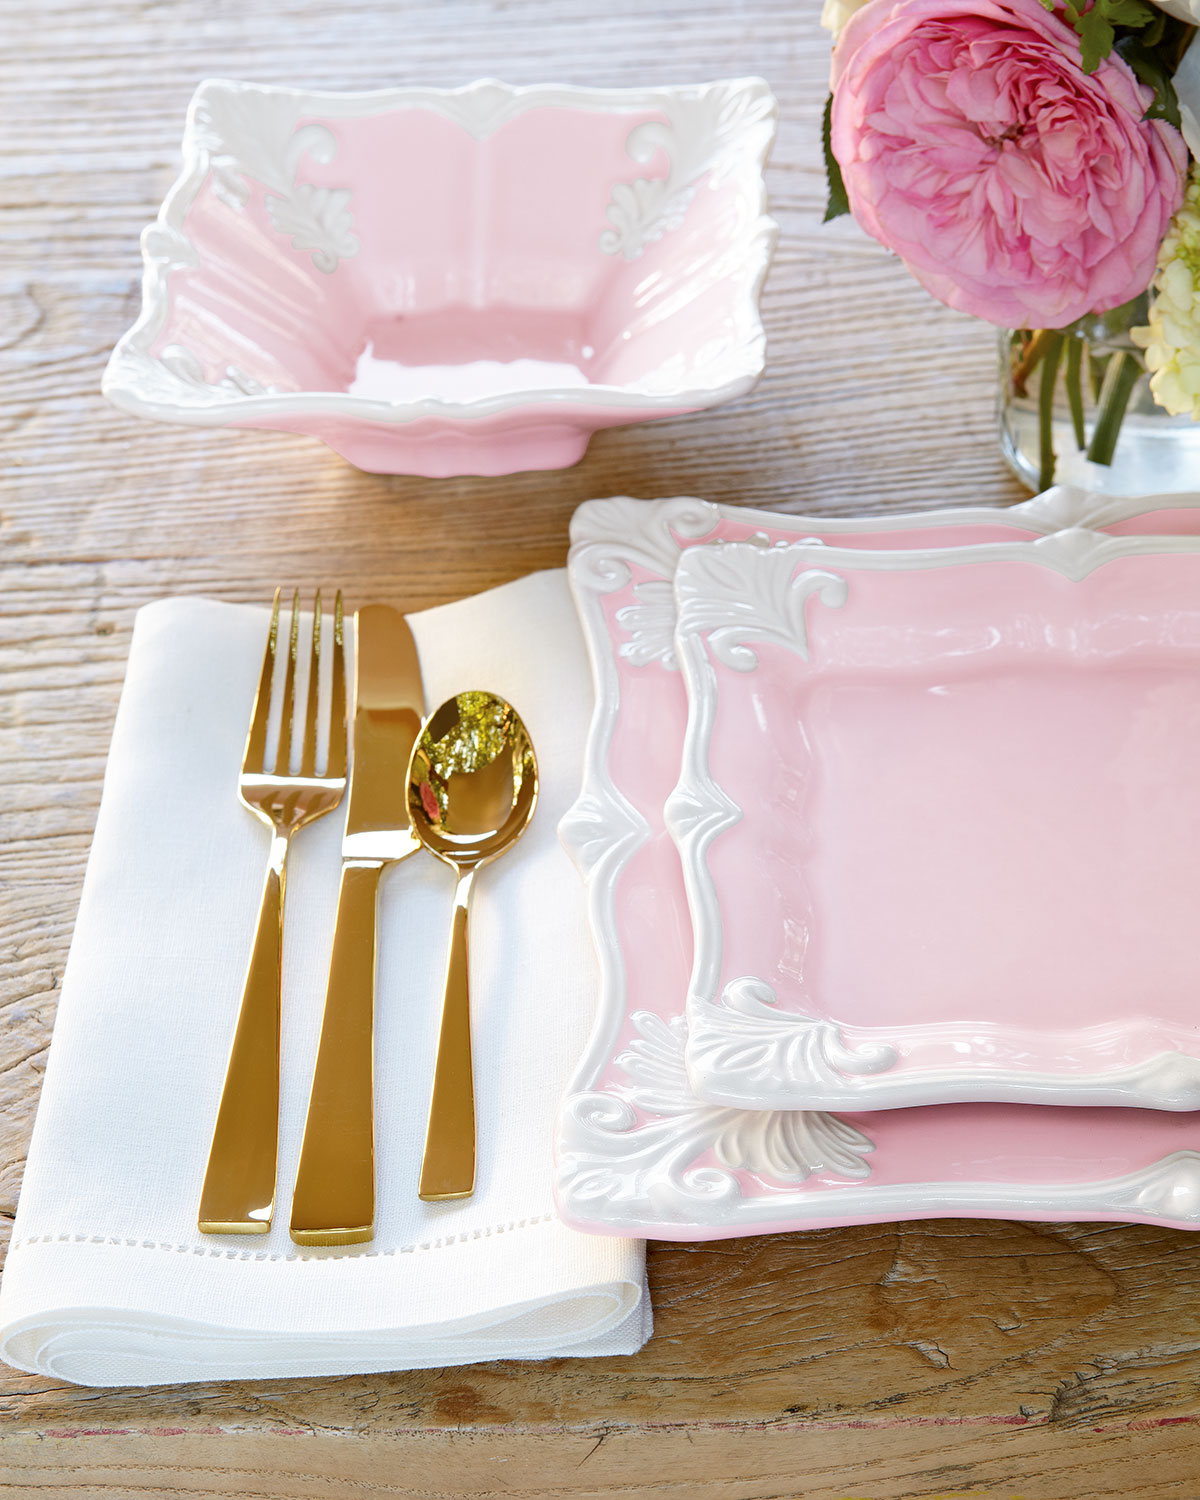 10 Gorgeous Table Setting Ideas How To Set Your Table Shop Room Ideas